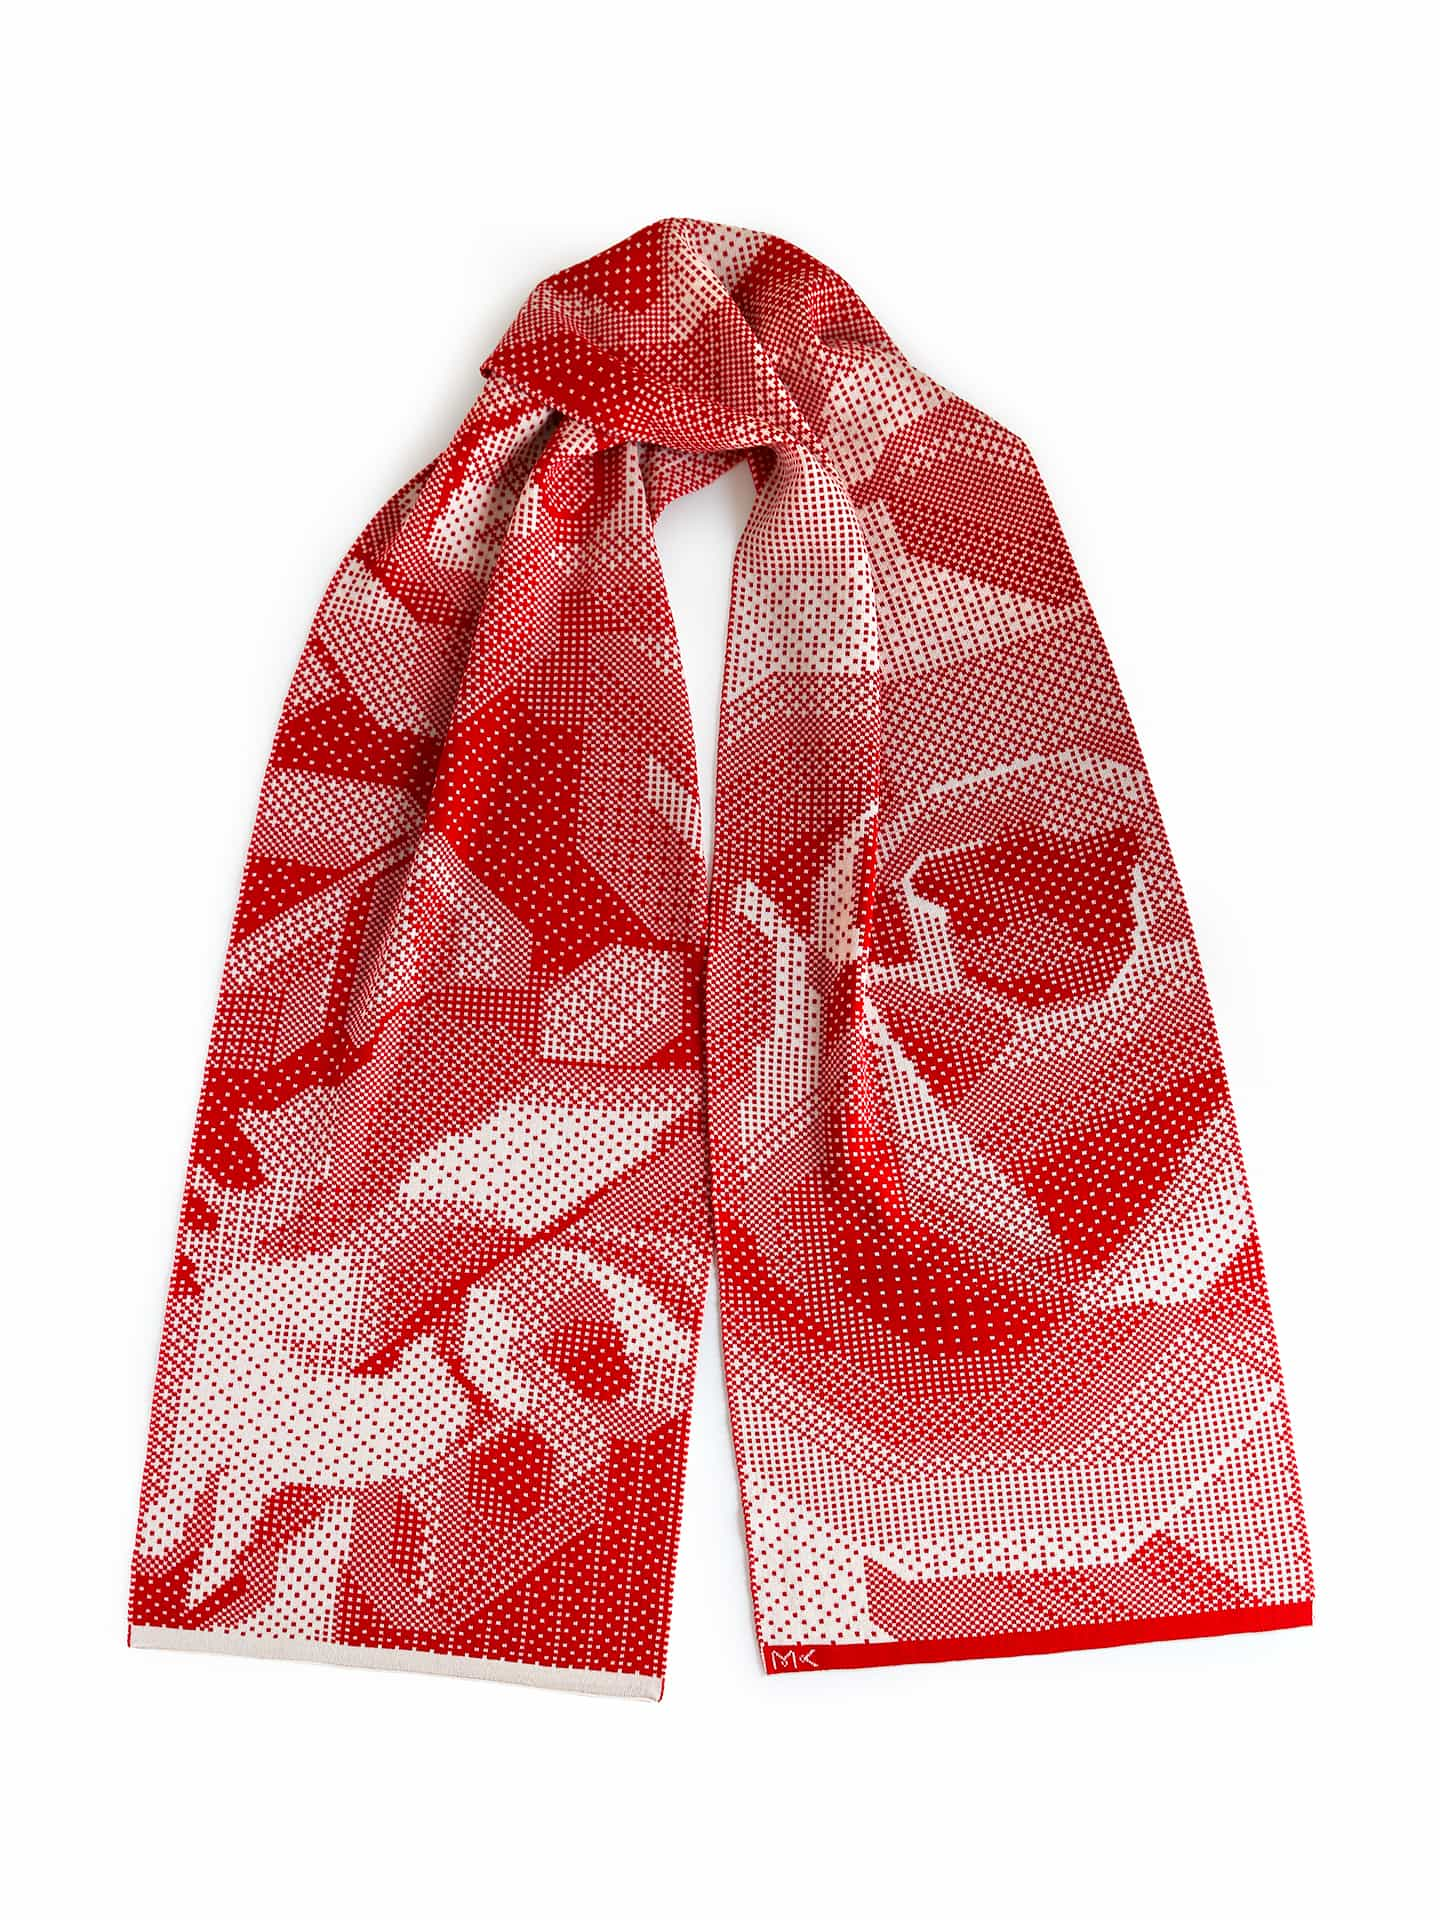 Pixelated Roses Scarf - Red & Ivory